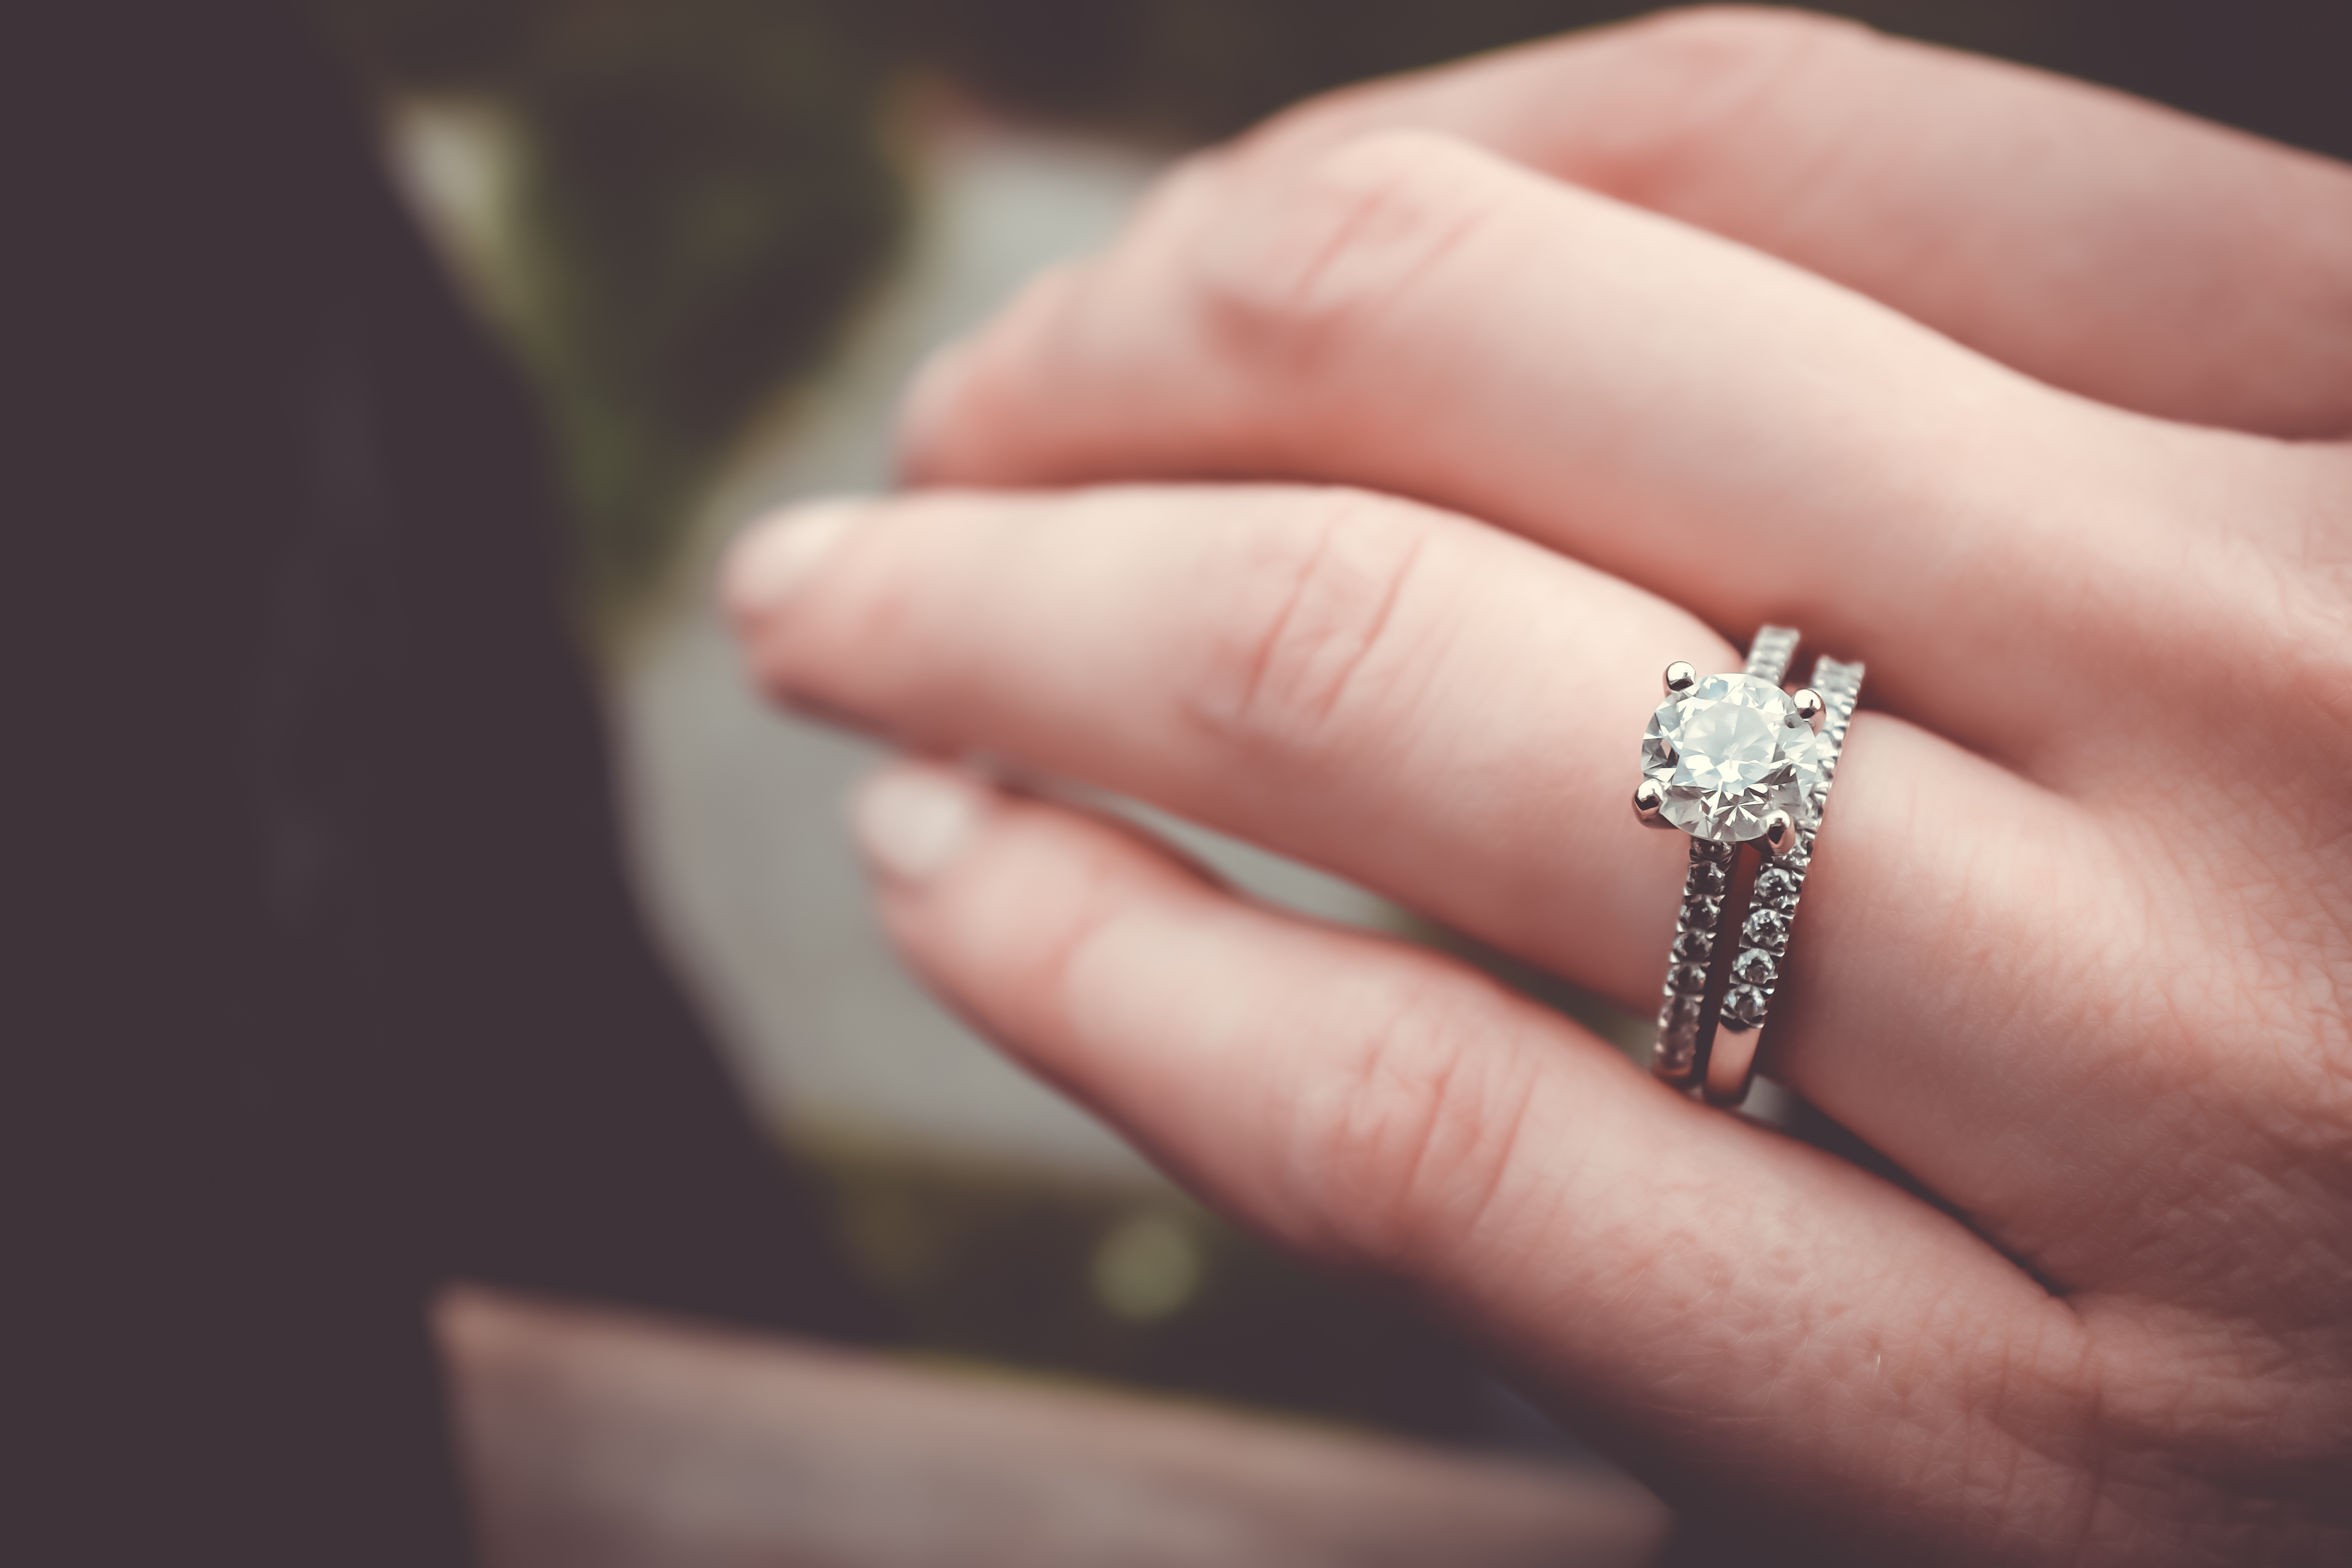 Ring Pictures Download Free Images on Unsplash